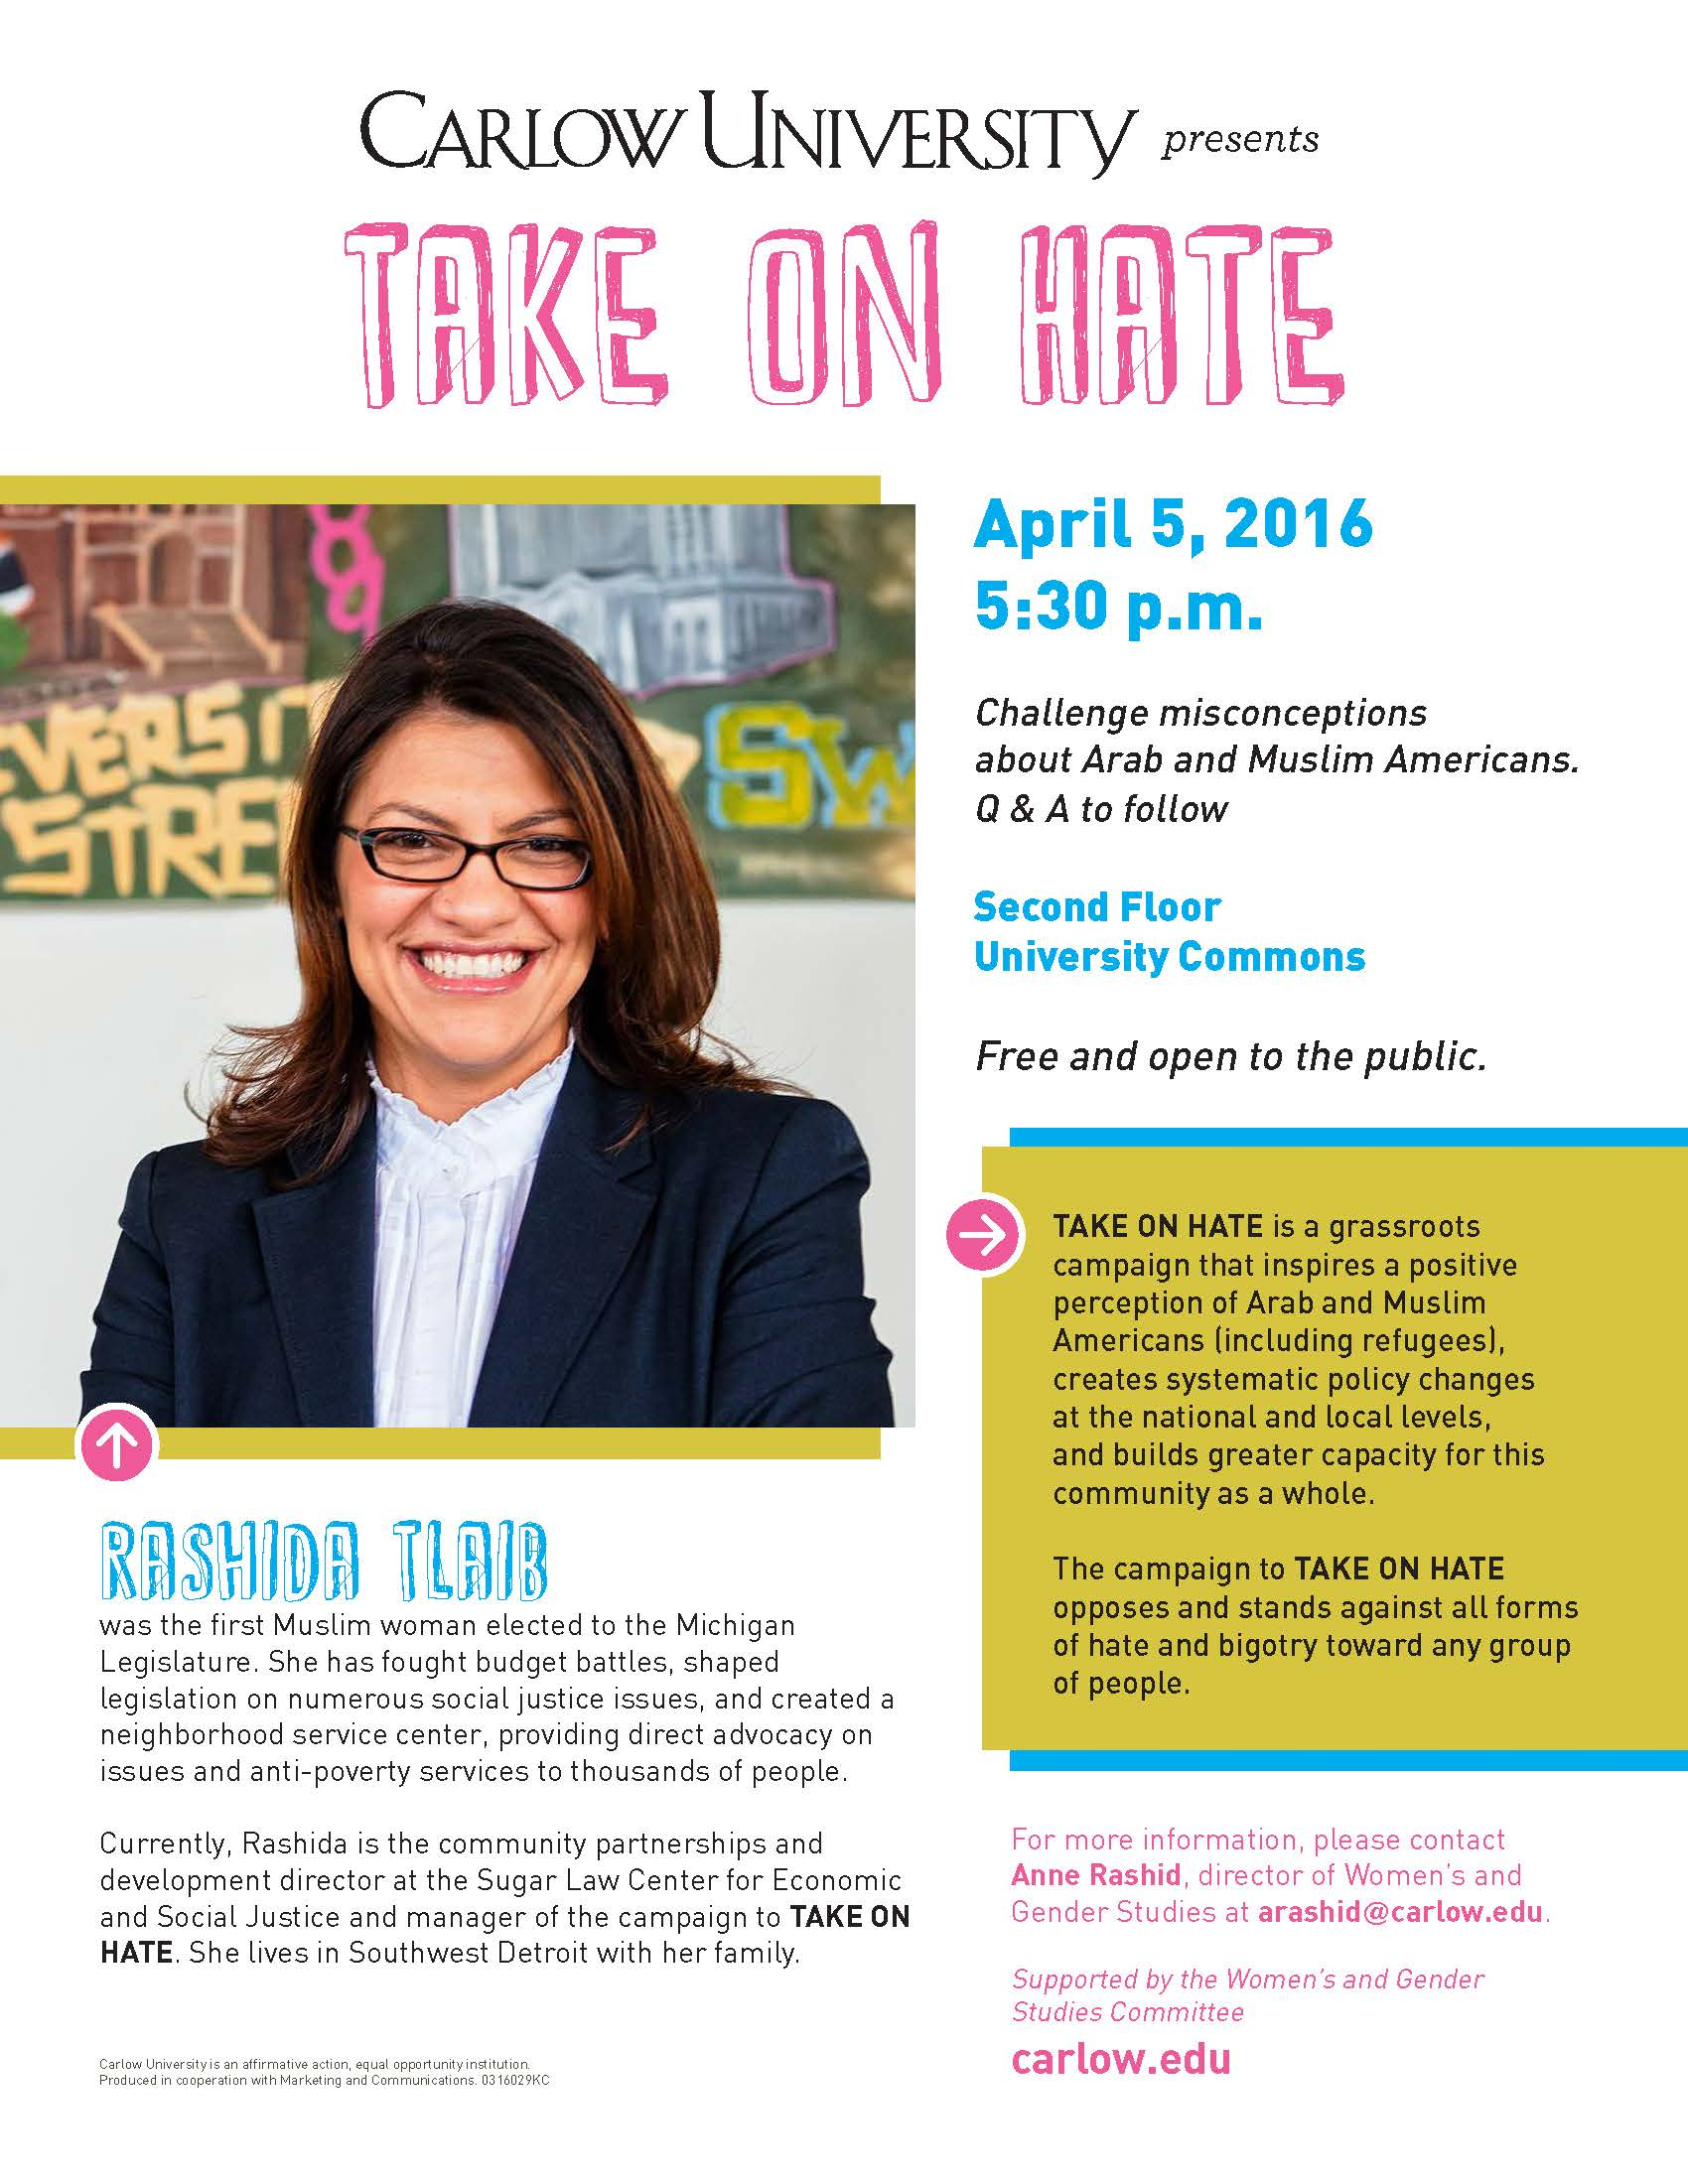 Rashida_Tlaib_Take_on_Hate_Speaker_Flyer.jpg